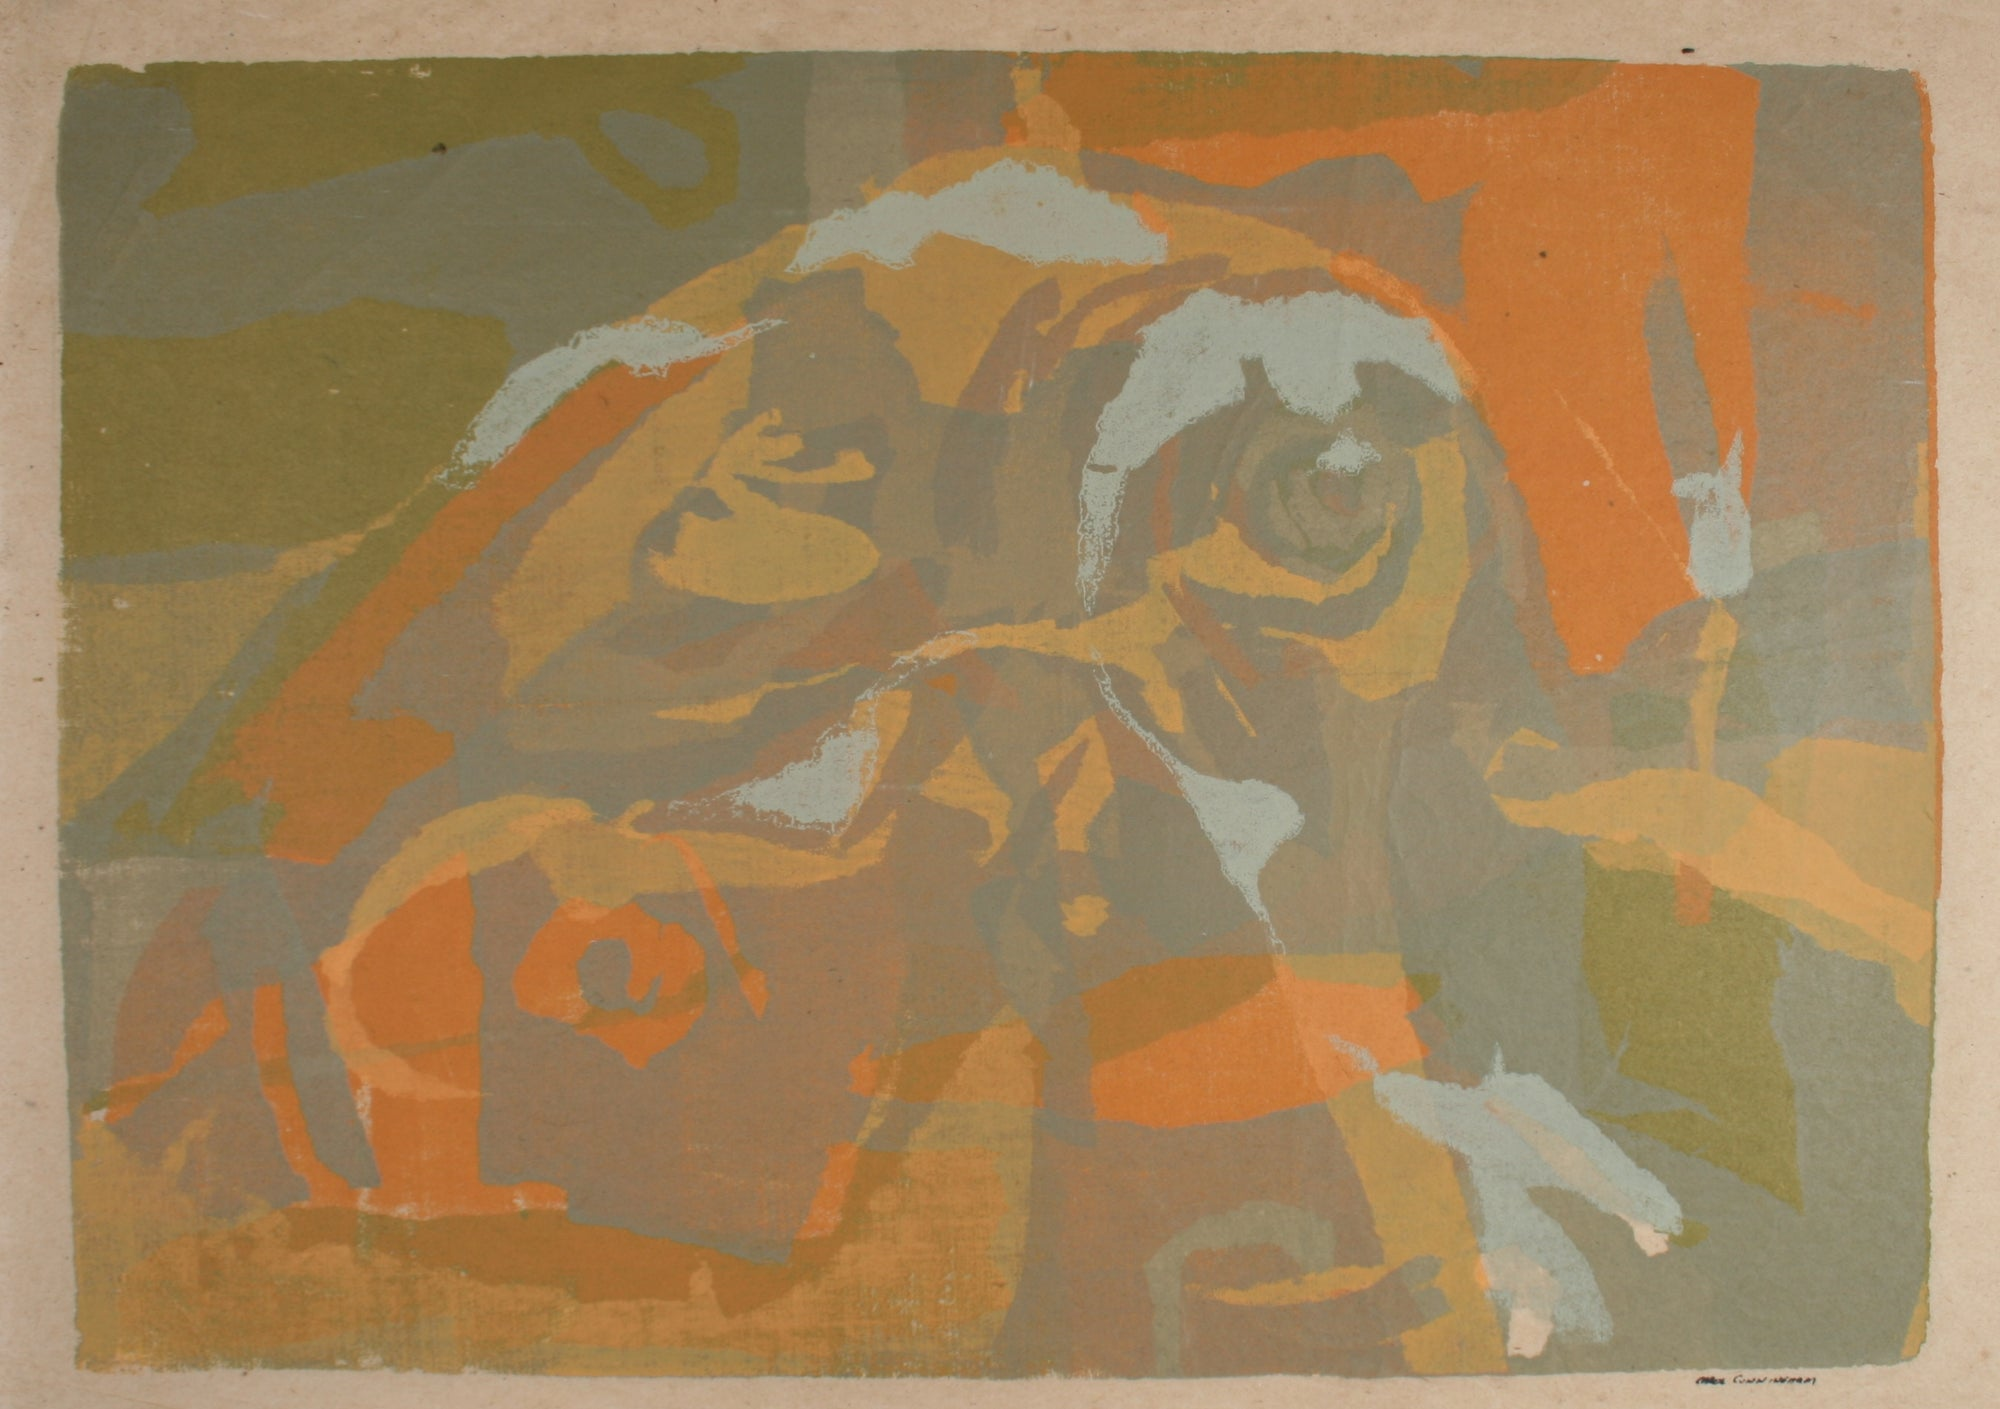 Orange & Green Abstraction<br>1960-70s Serigraph<br><br>#71283